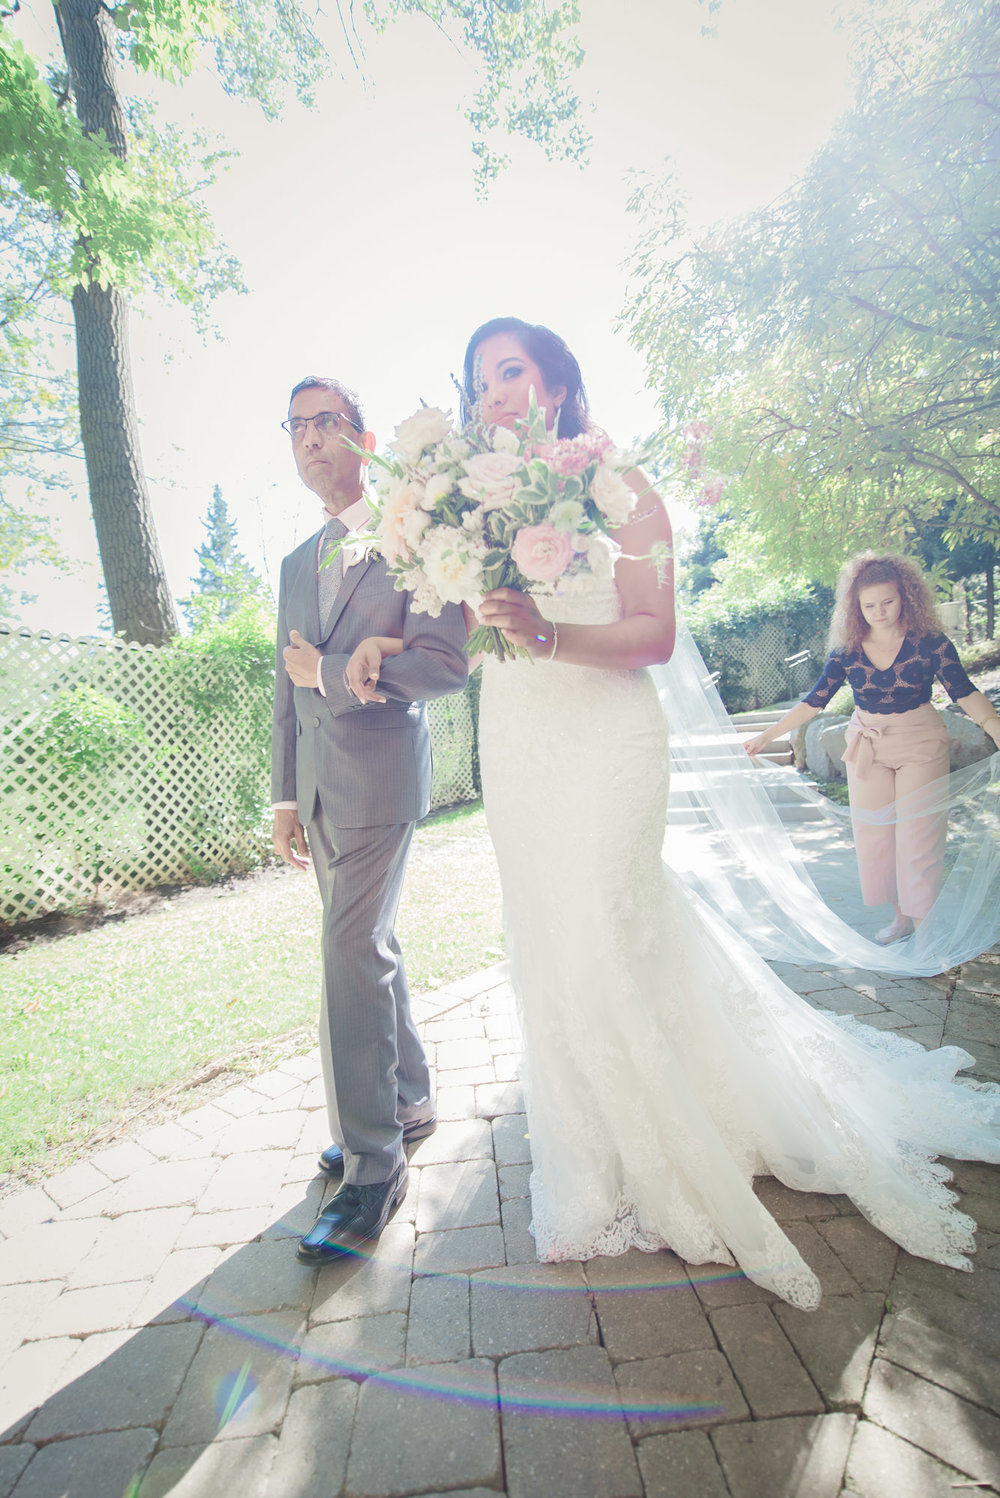 FM&CO.-Michelle&Jimmy-Ceremony-247.jpg